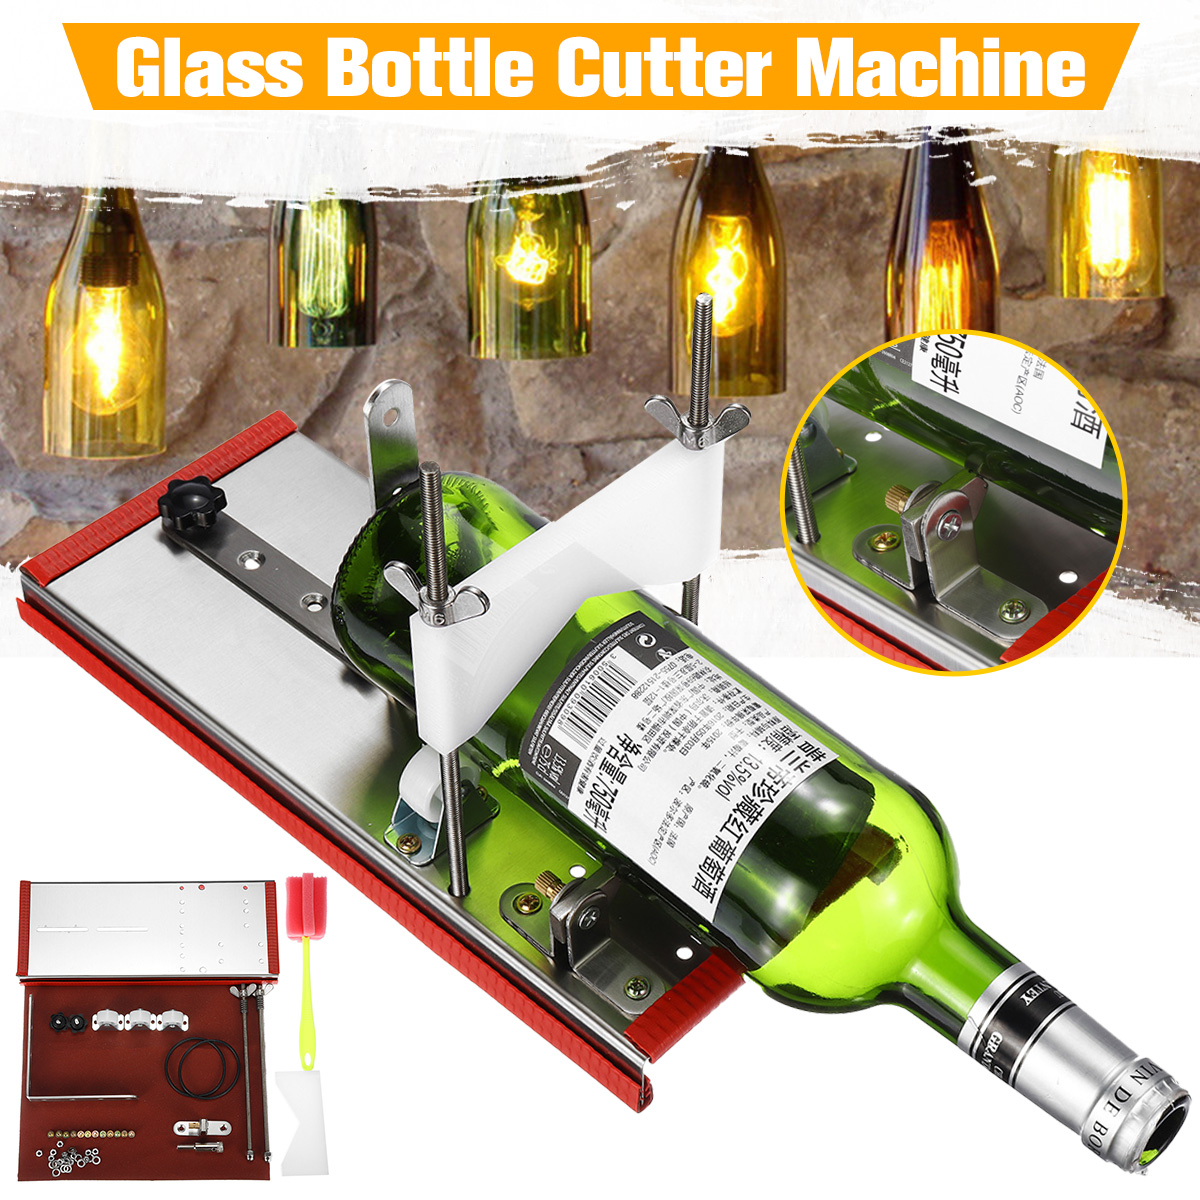 Glass Bottle Cutter 2-10mm Beer Wine Jar Accurate Cutting Machine DIY Recycle Cutting Tool Kit Stainless Steel Smoothly Cutting все цены